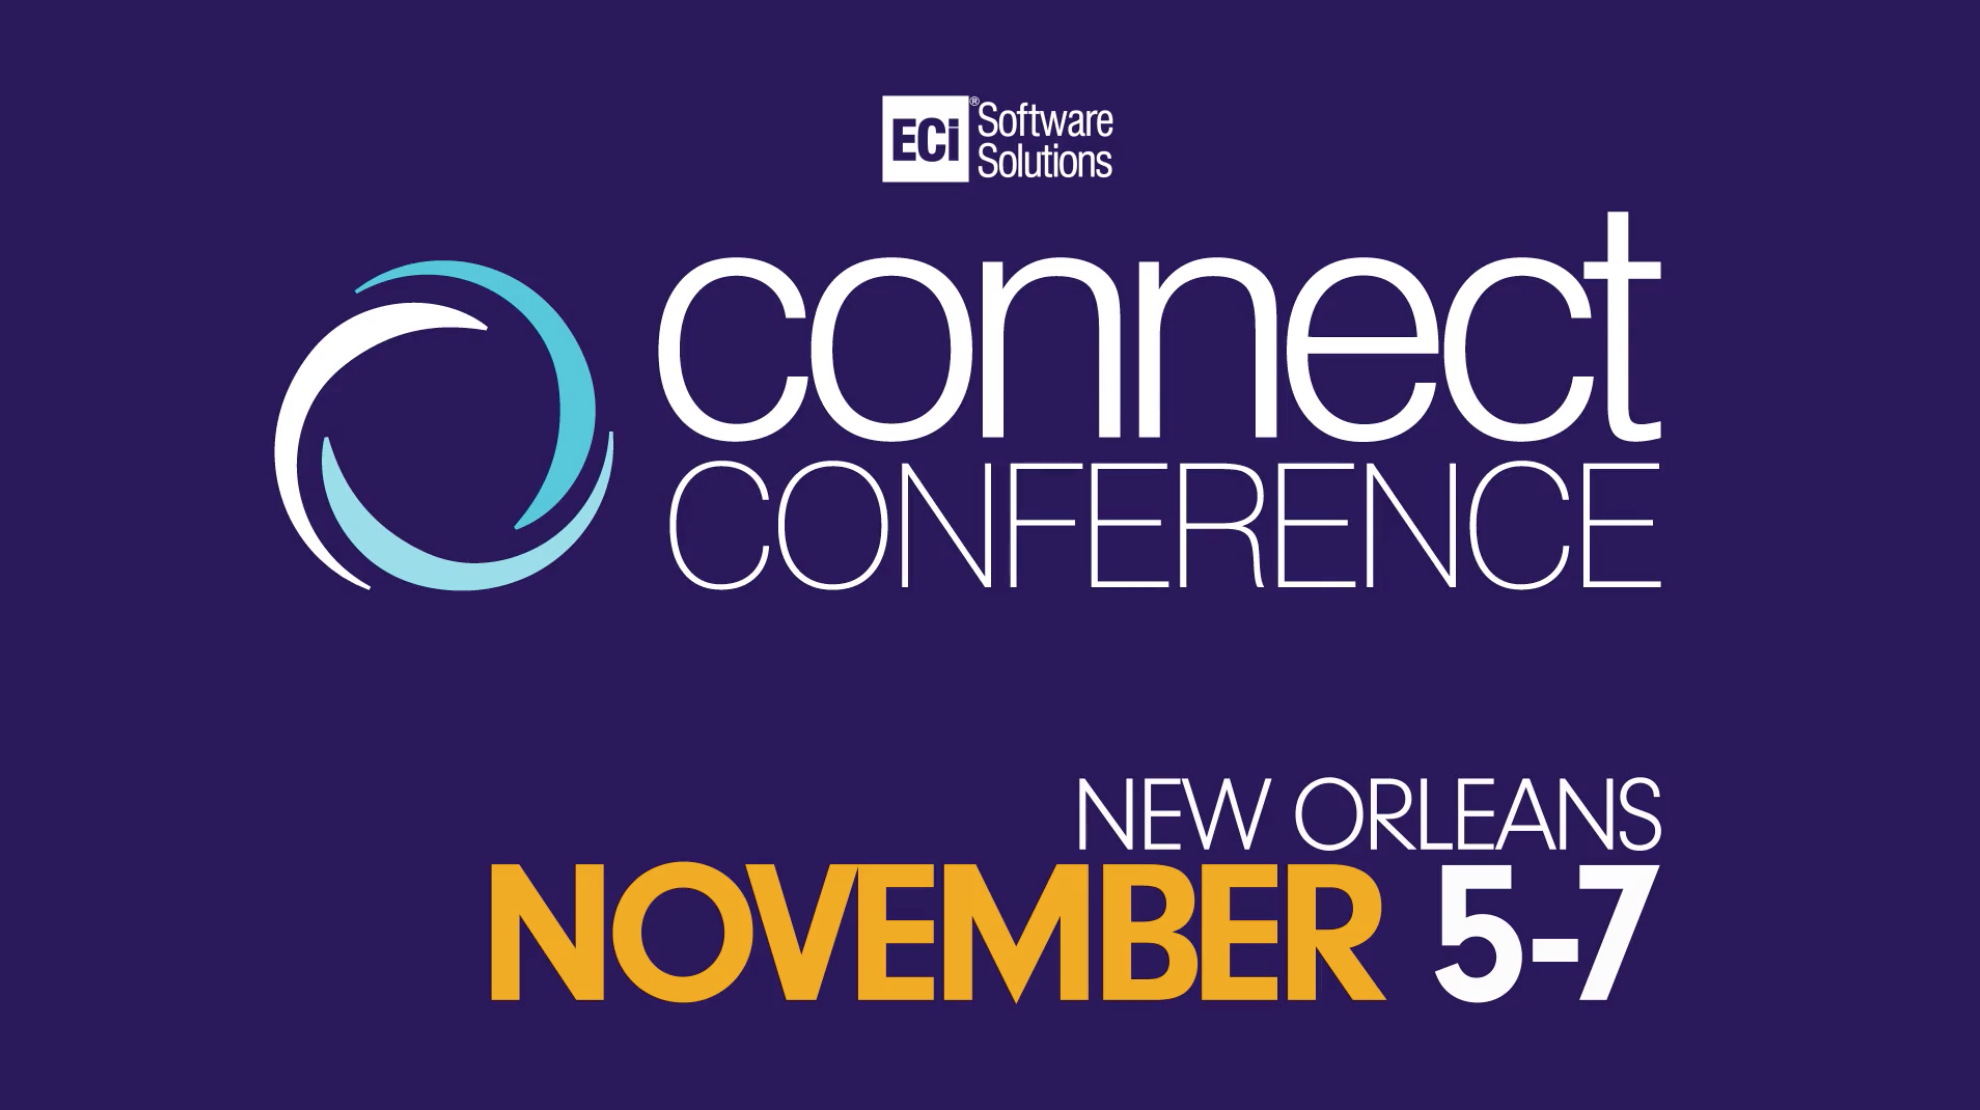 Join WiSys at the ECi Connect Conference for Macola Users in November